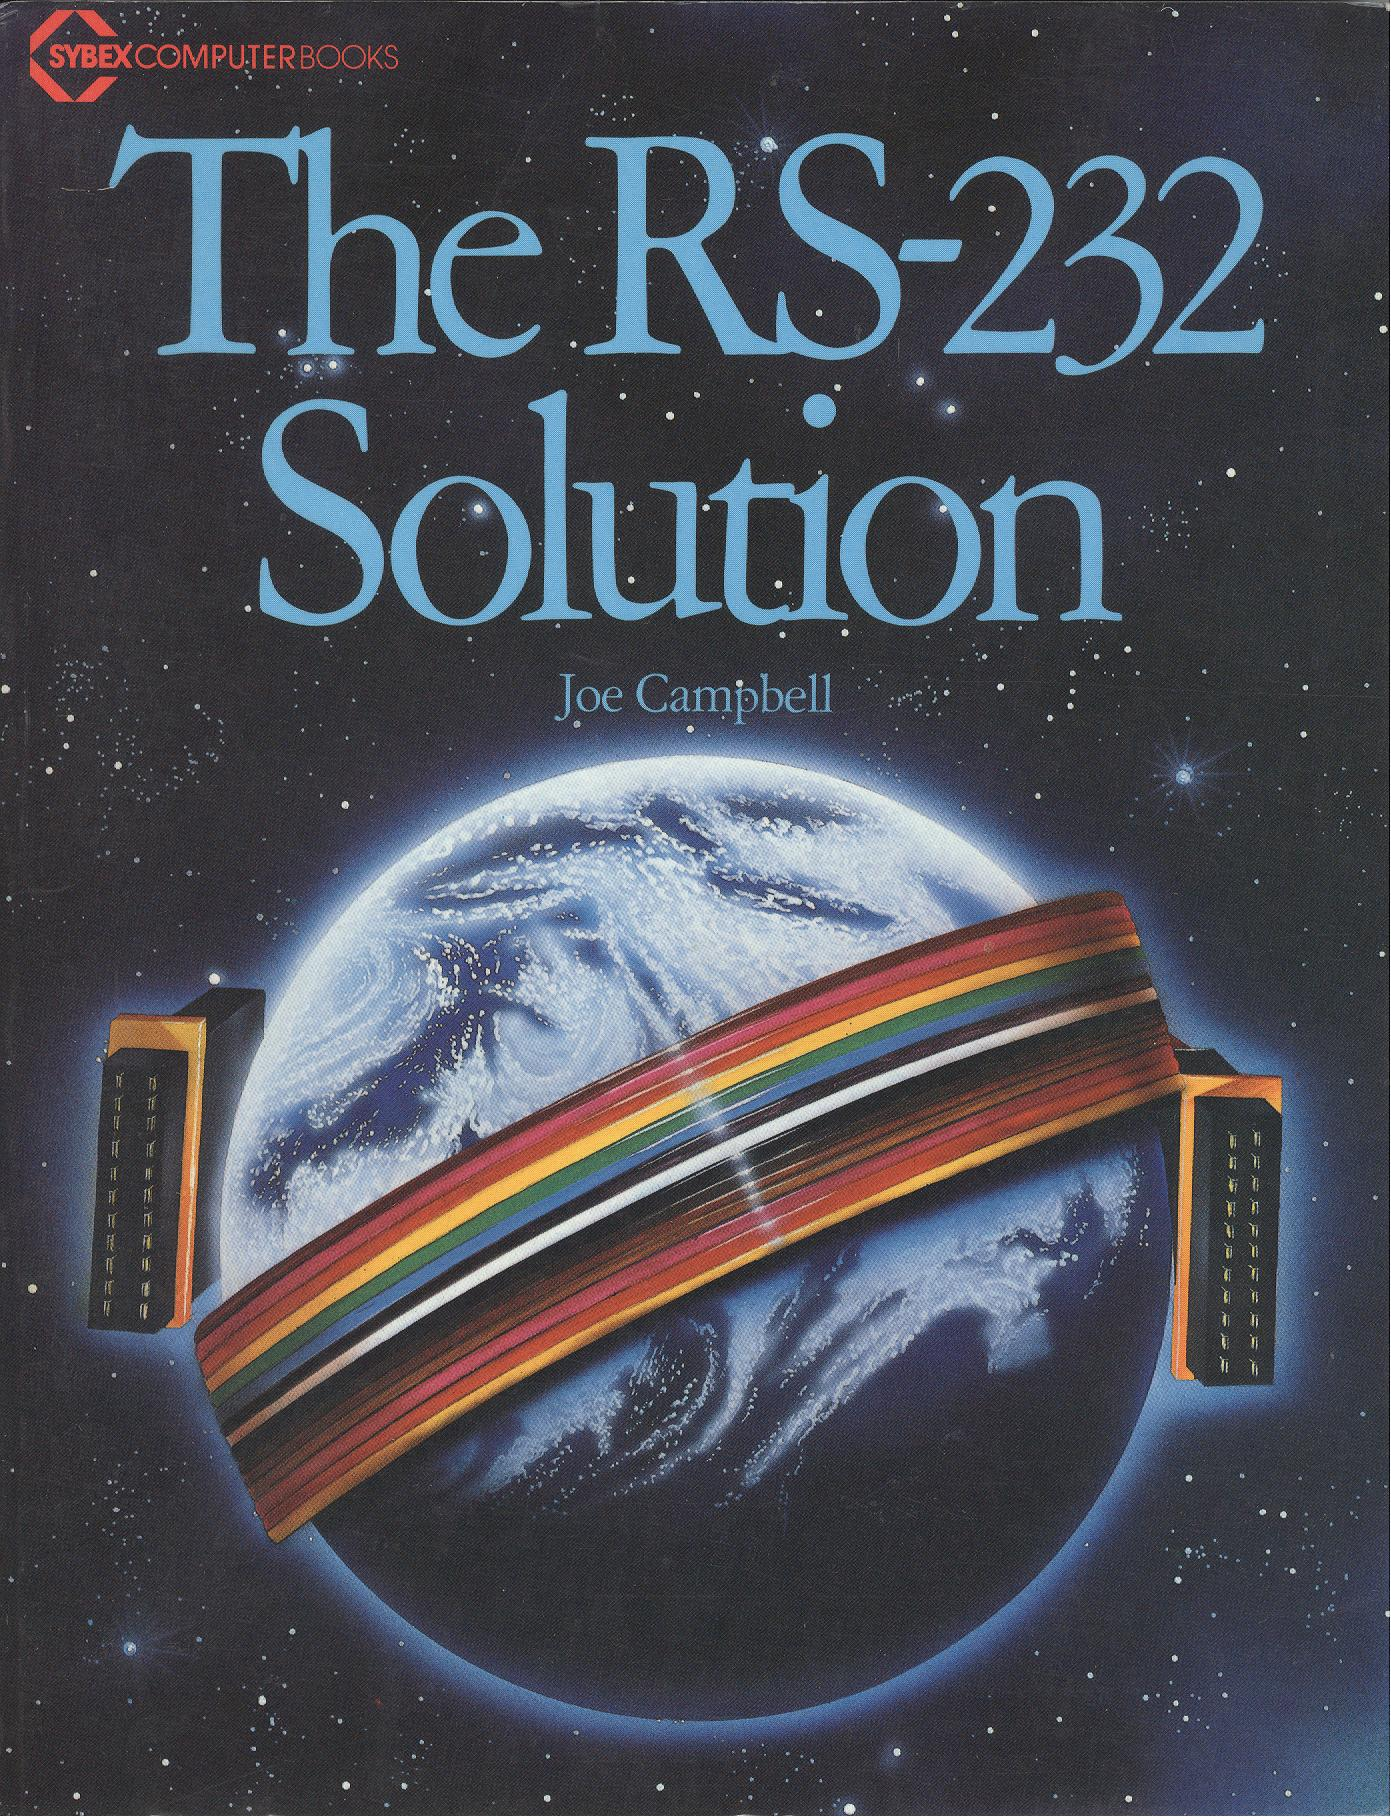 The RS-232 solution